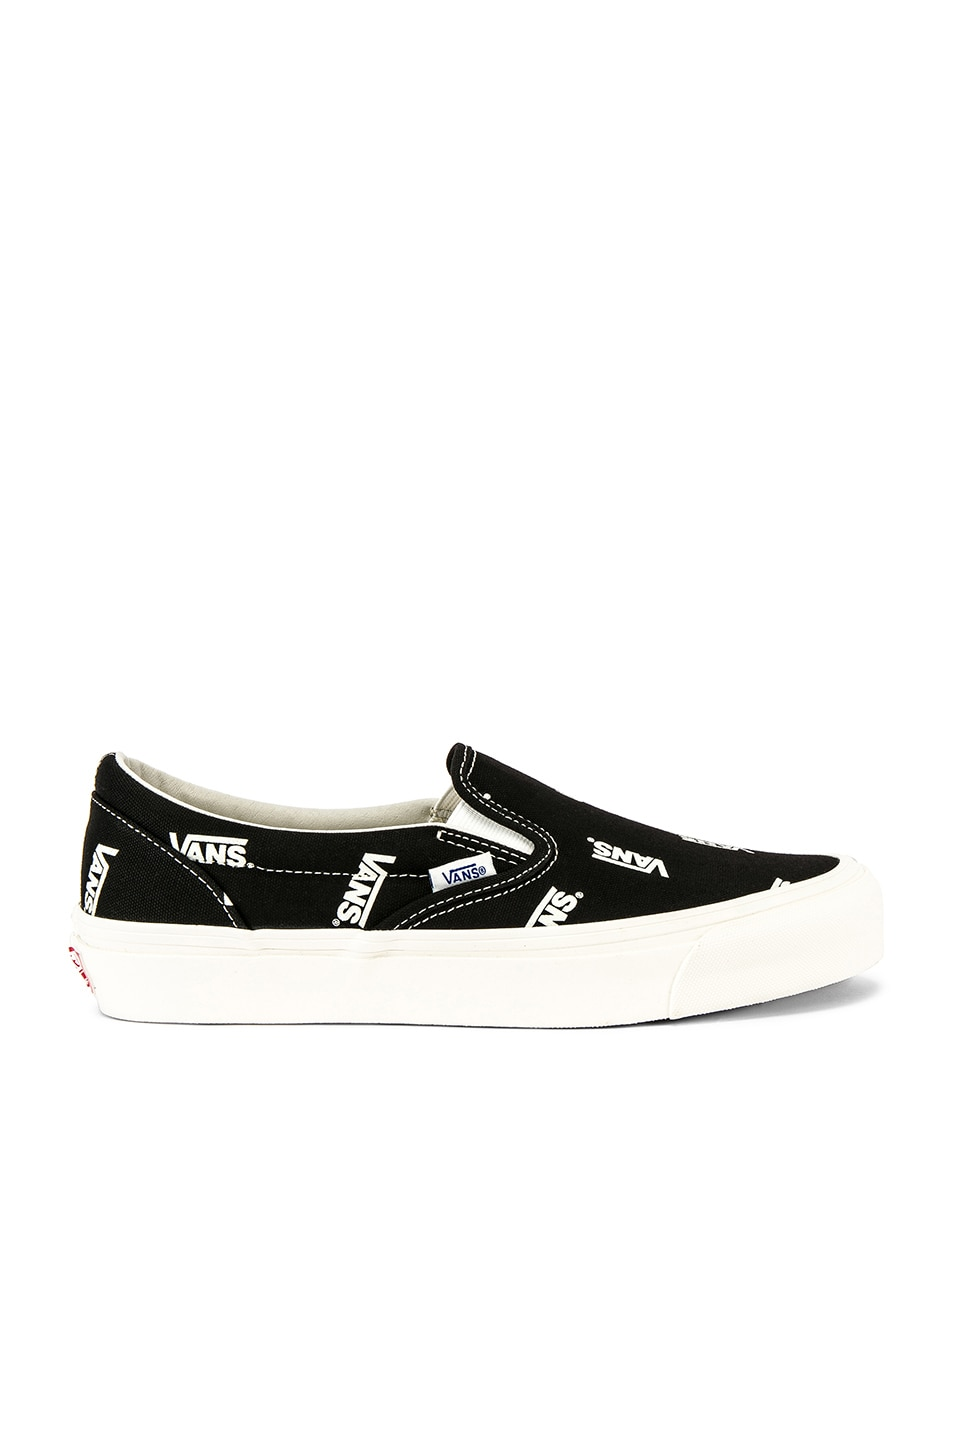 f6a2f26a0c Image 1 of Vans Vault OG Classic Slip-On LX in Black   Marshmallow